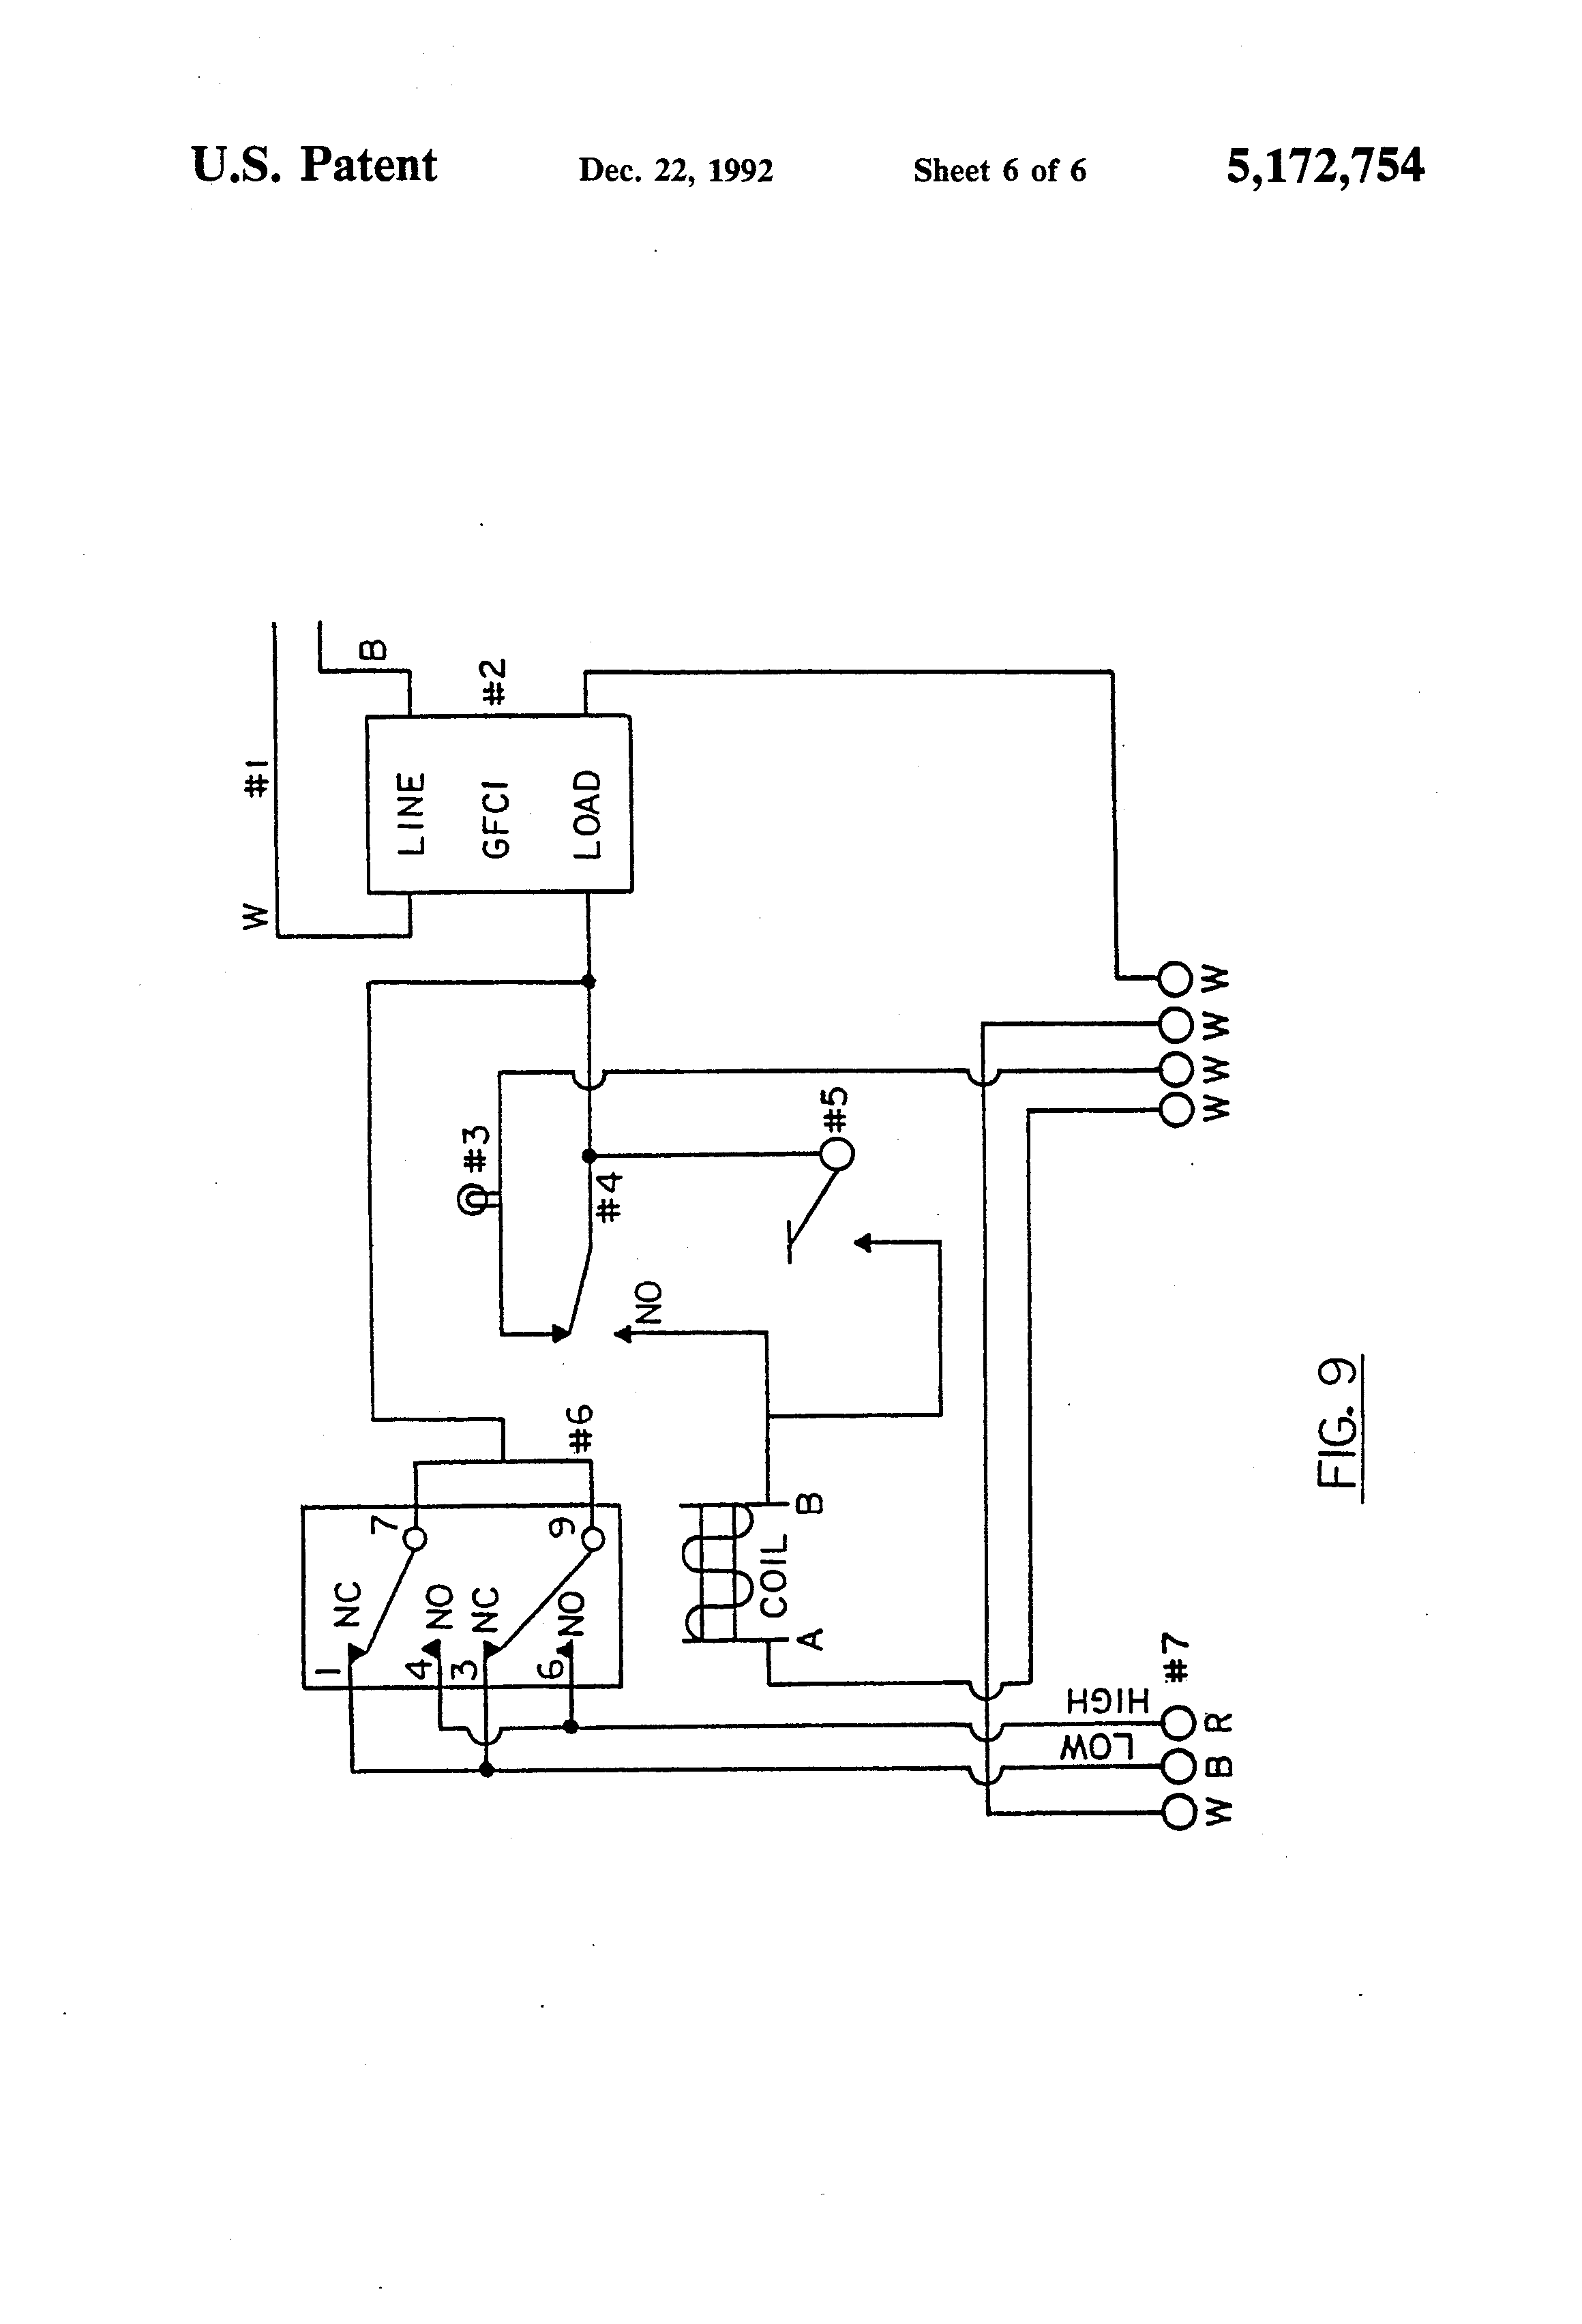 Patent Us5172754 - Heat Exchanger For Recovery Of Heat From A Spa Or Hot Tub Pump Motor